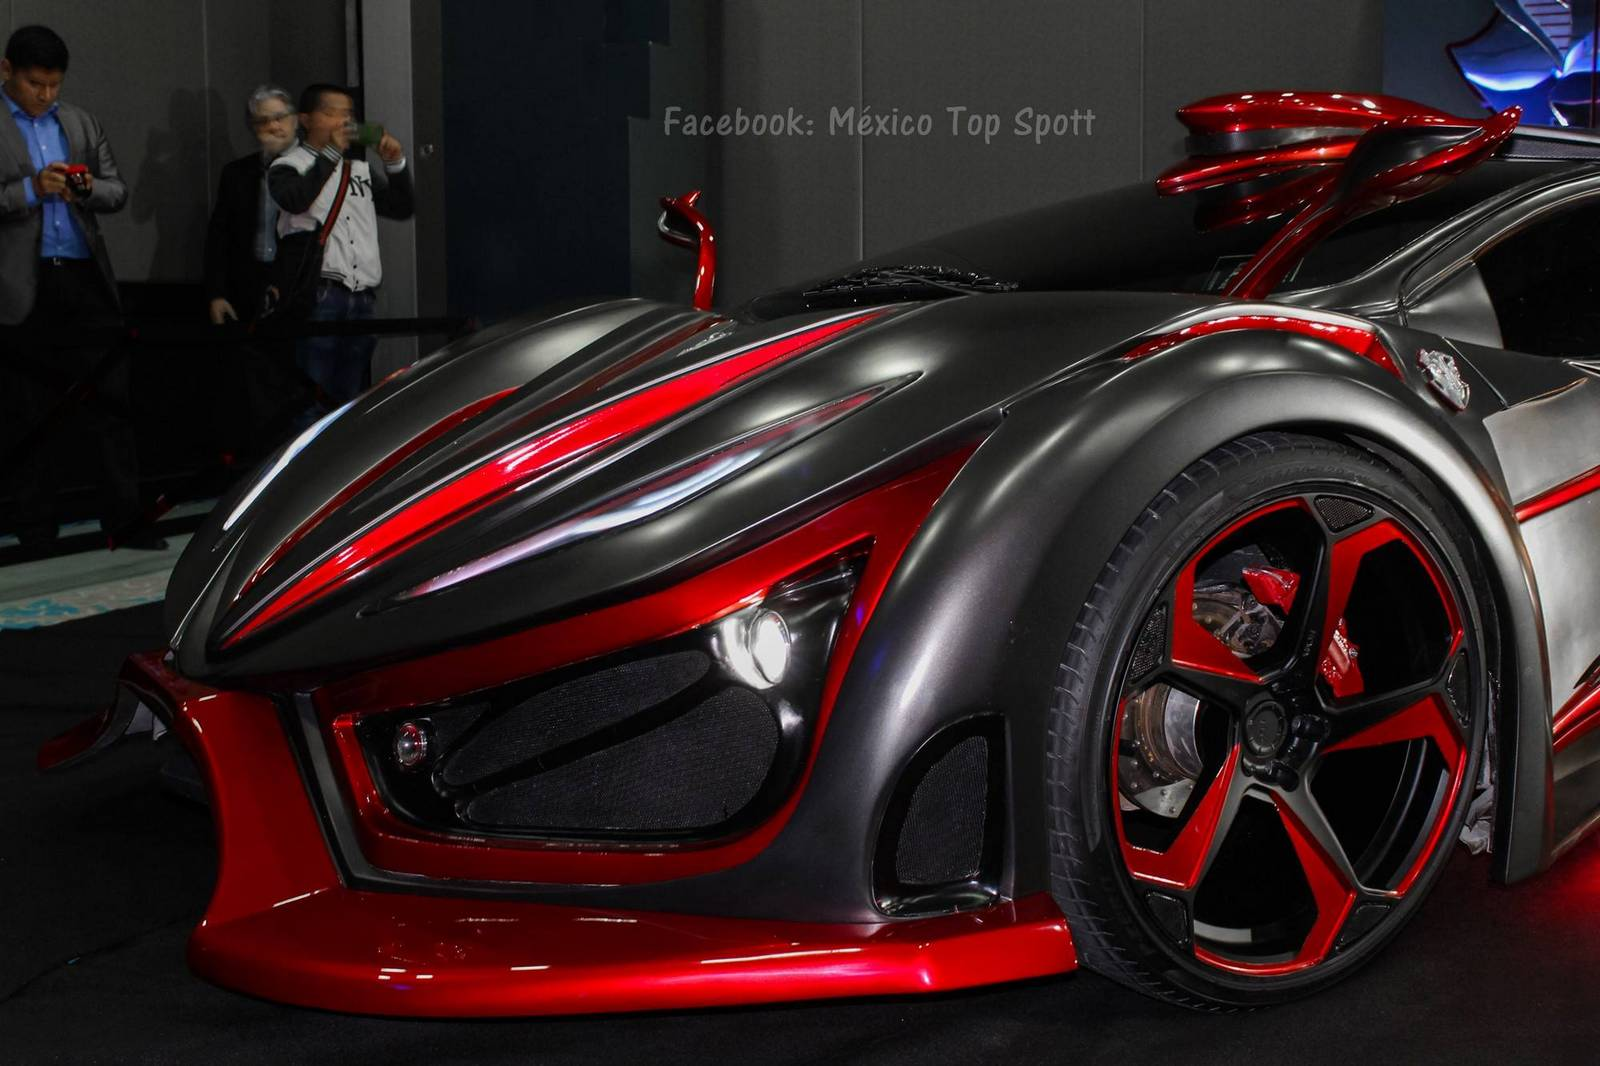 Fastest Car In The World Wallpaper 2015 Mexico S First Hypercar The Inferno Exotic Car Isn T